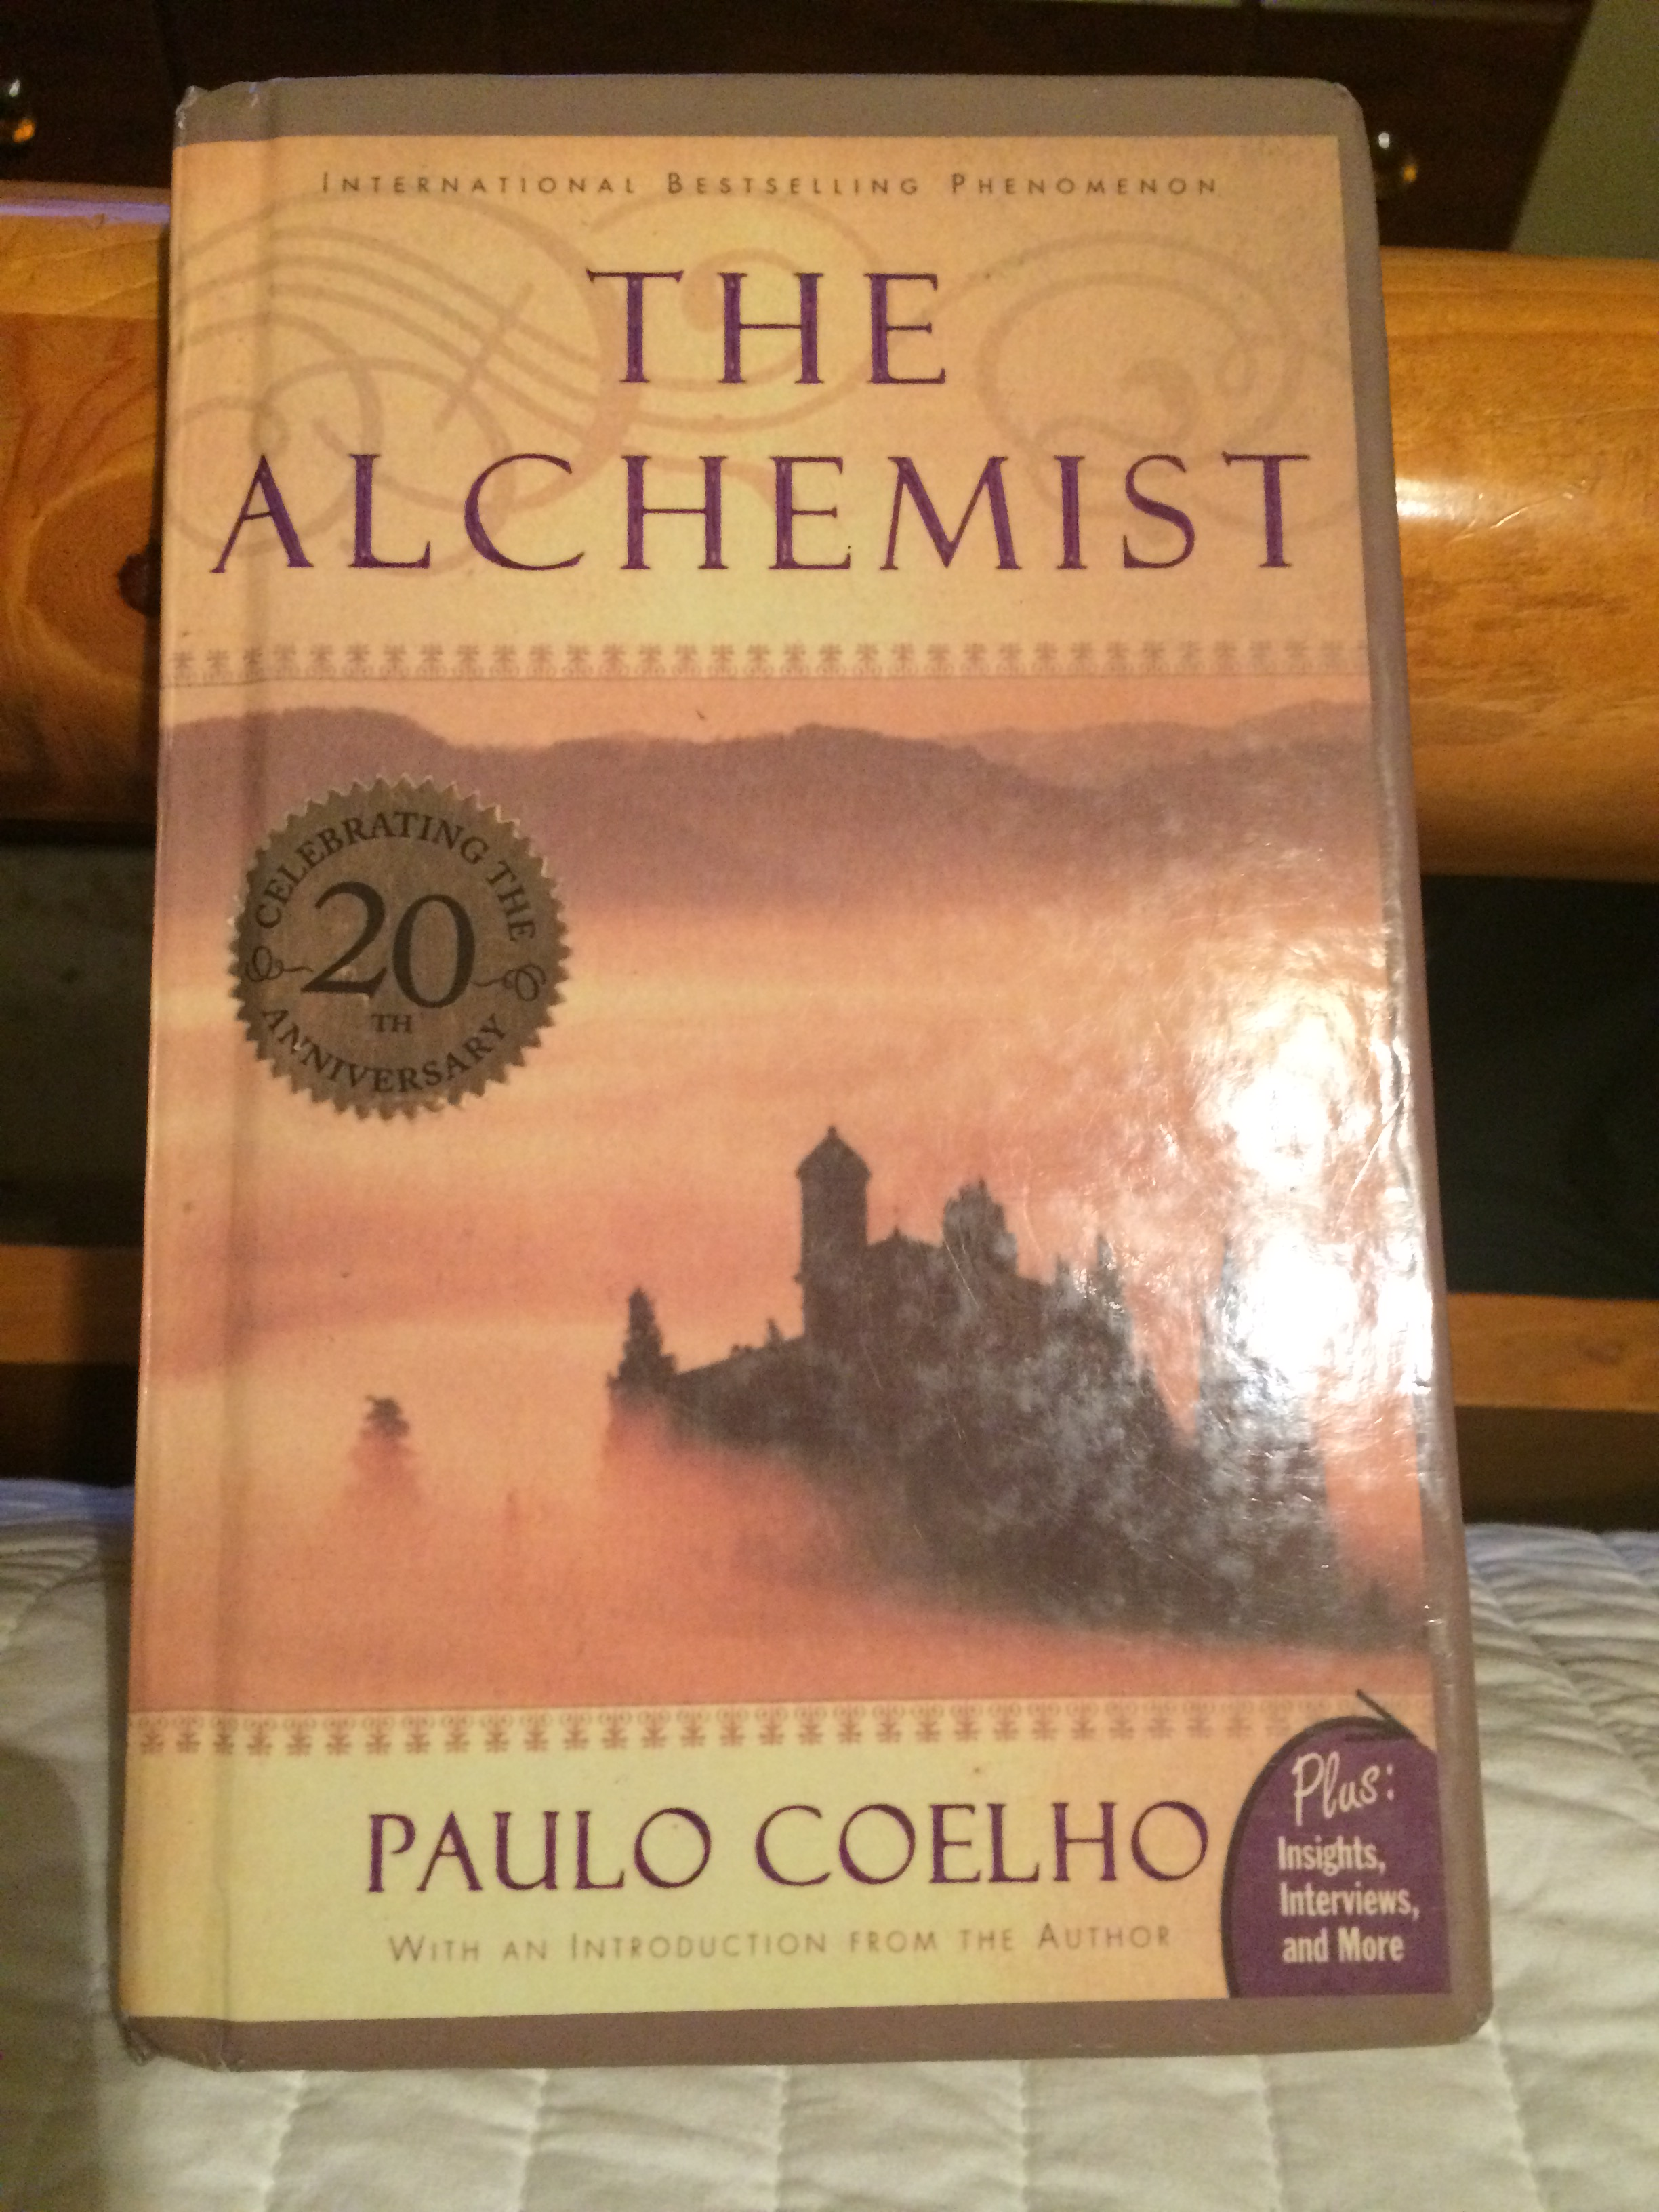 the alchemist by paulo coelho a Cobra: the cobra is a symbol of danger and strength, especially male potency crystal glassware: fragility and clarity are the characteristics represented by the crystal merchant's crystal glassware desert: the desert is symbolic of all the obstacles and hardships that stand between people and their dreamsin the alchemist, characters learn to accept the desert, even listen to it.